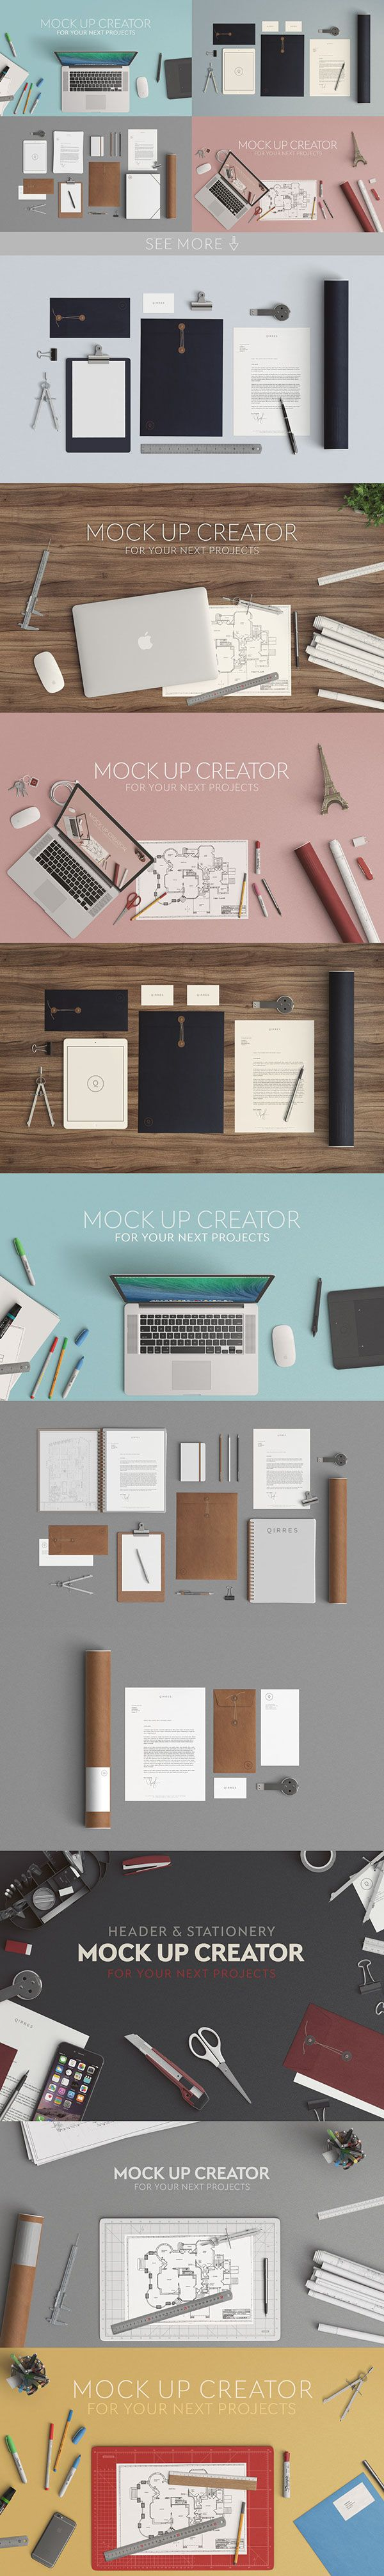 best ideas about website creator online header stationery mock up creator on behance